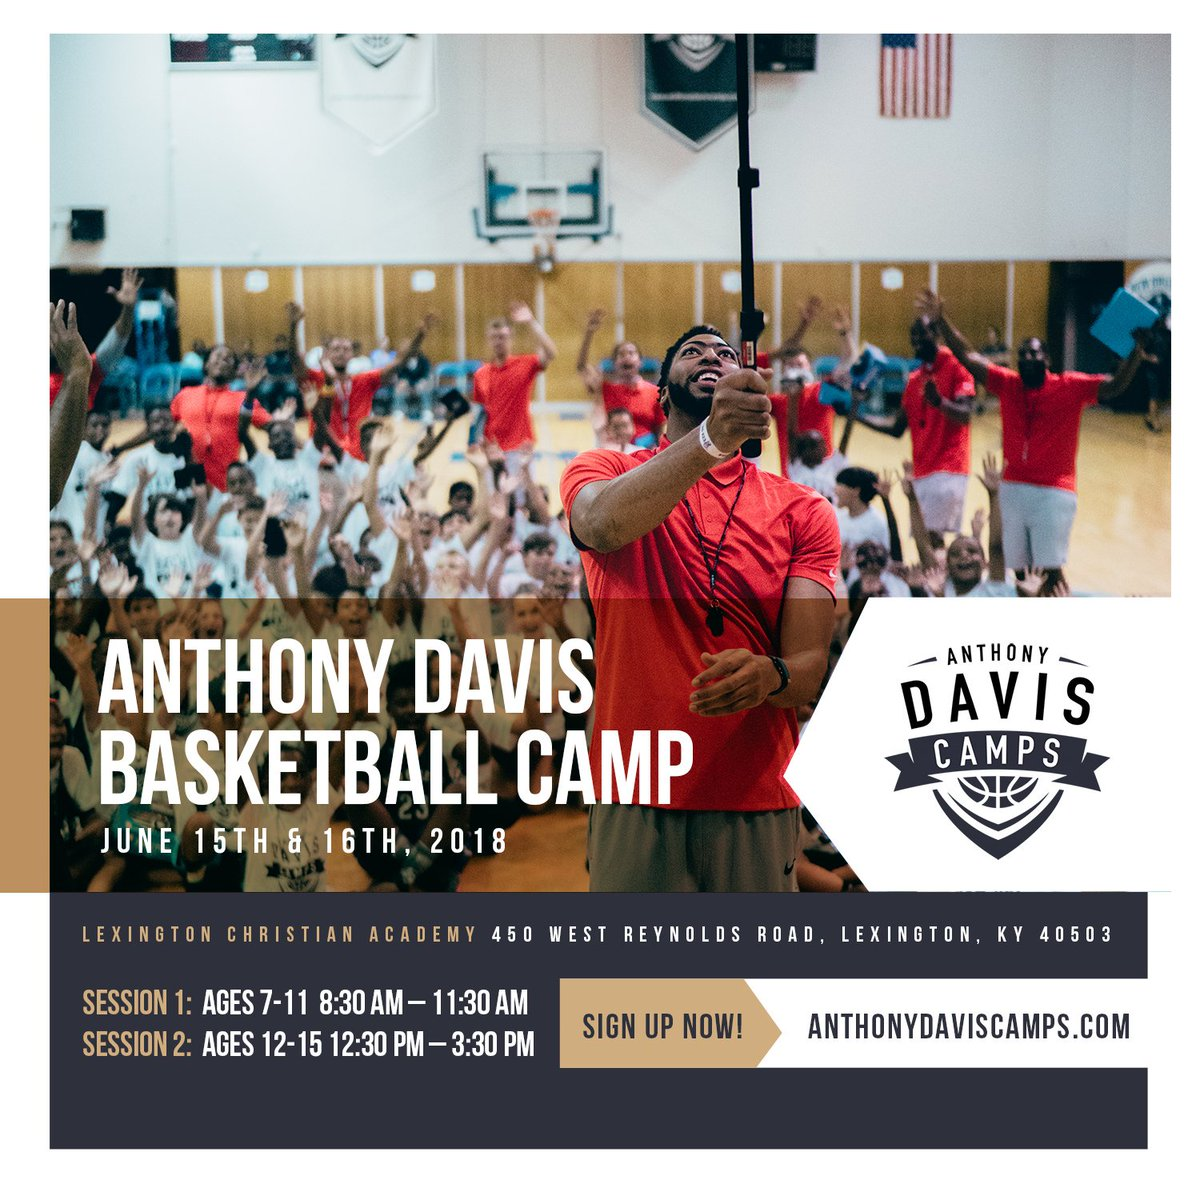 LEXINGTON KENTUCKY!! Spots are going quick for my camp on June 15th-16th! Make sure you sign up soon at anthonydaviscamps.com